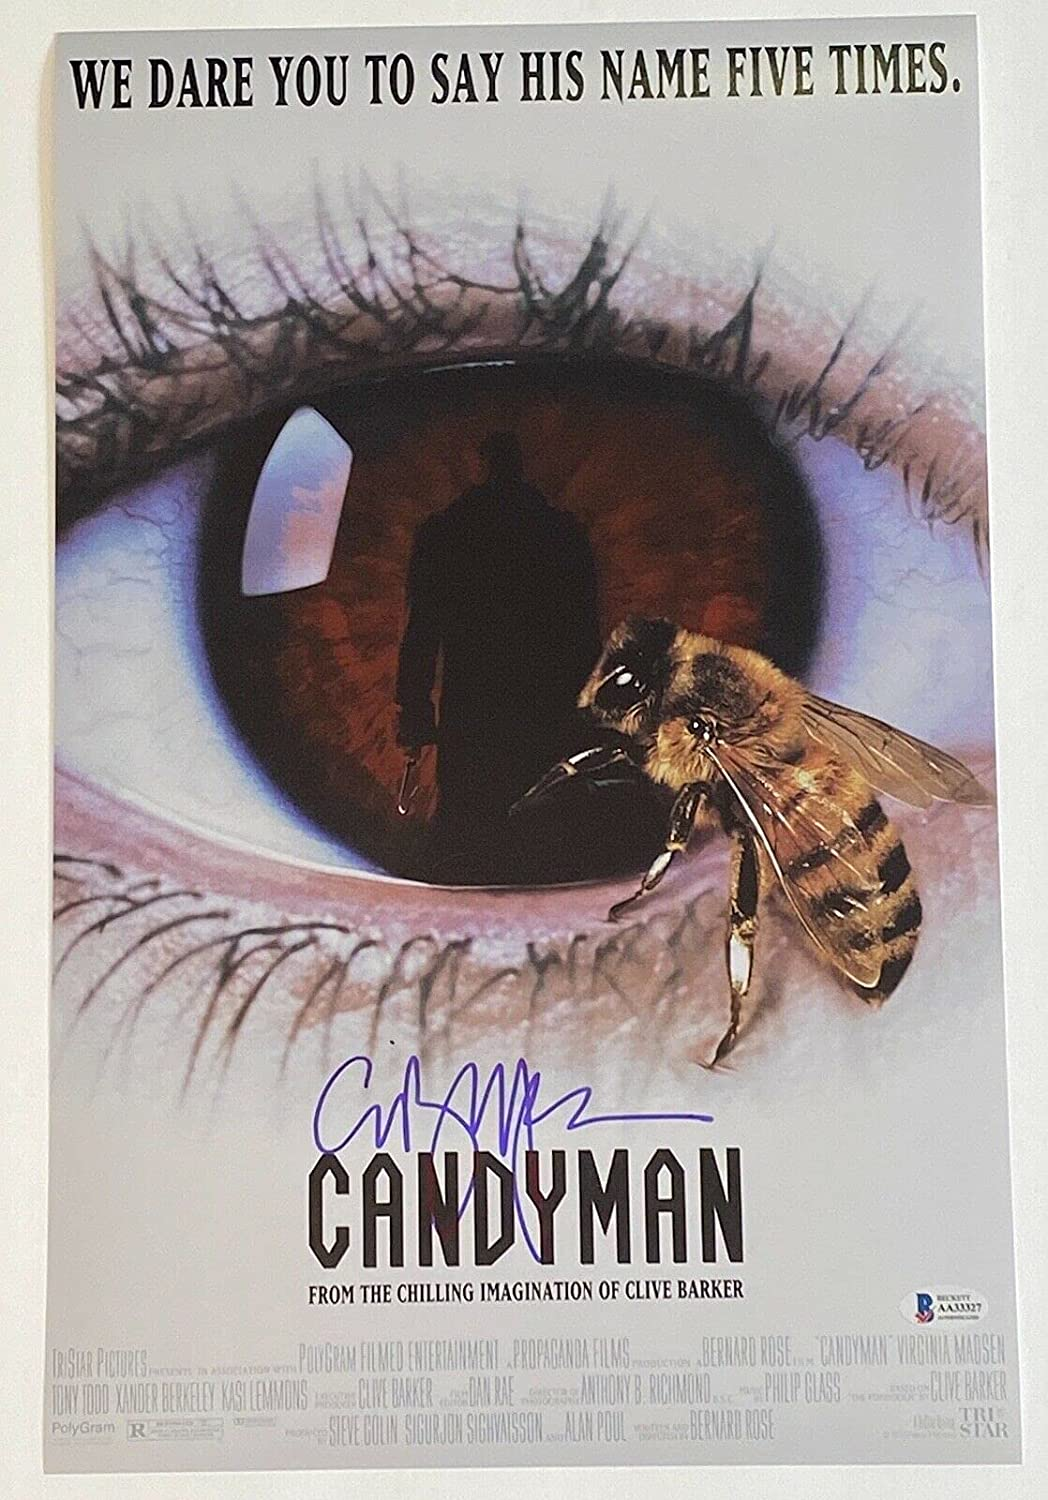 Clive Barker Signed Autographed Candyman Poster Movie store 2021new shipping free shipping 11x17 Phot